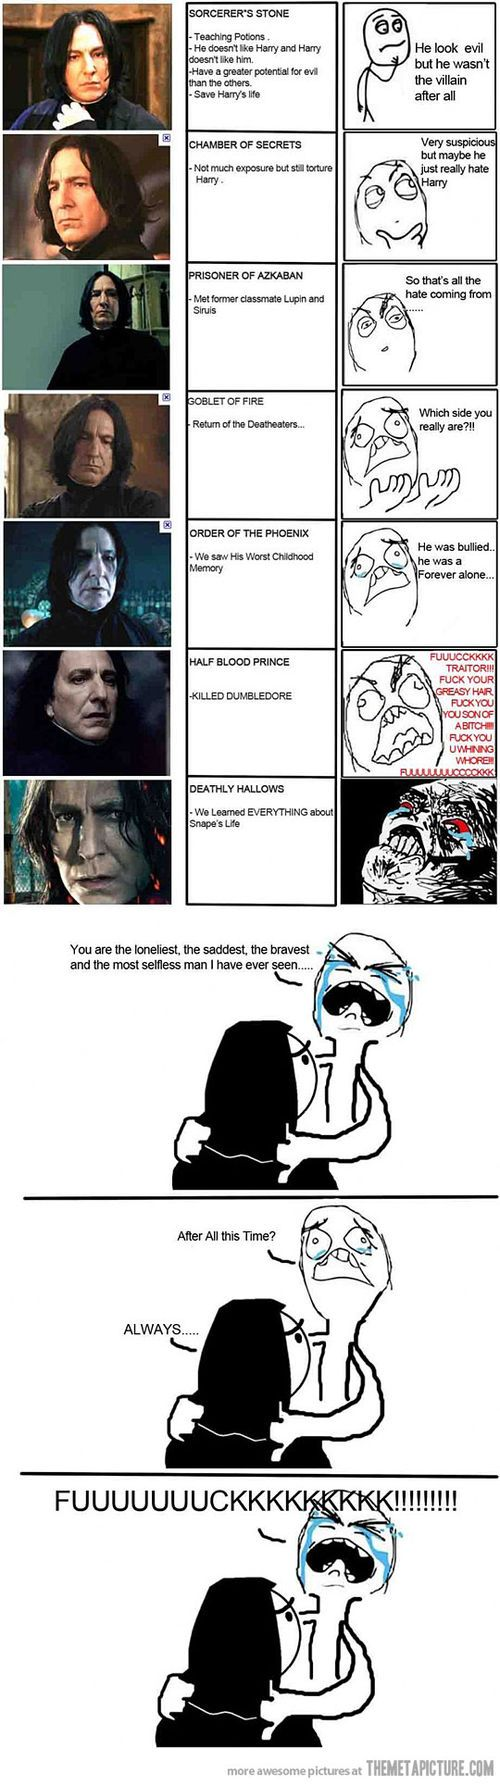 funny Snape Harry Potter comic on imgfave  Posted by AJM Web Services - social media marketing services https://www.ajmwebservices.co.uk